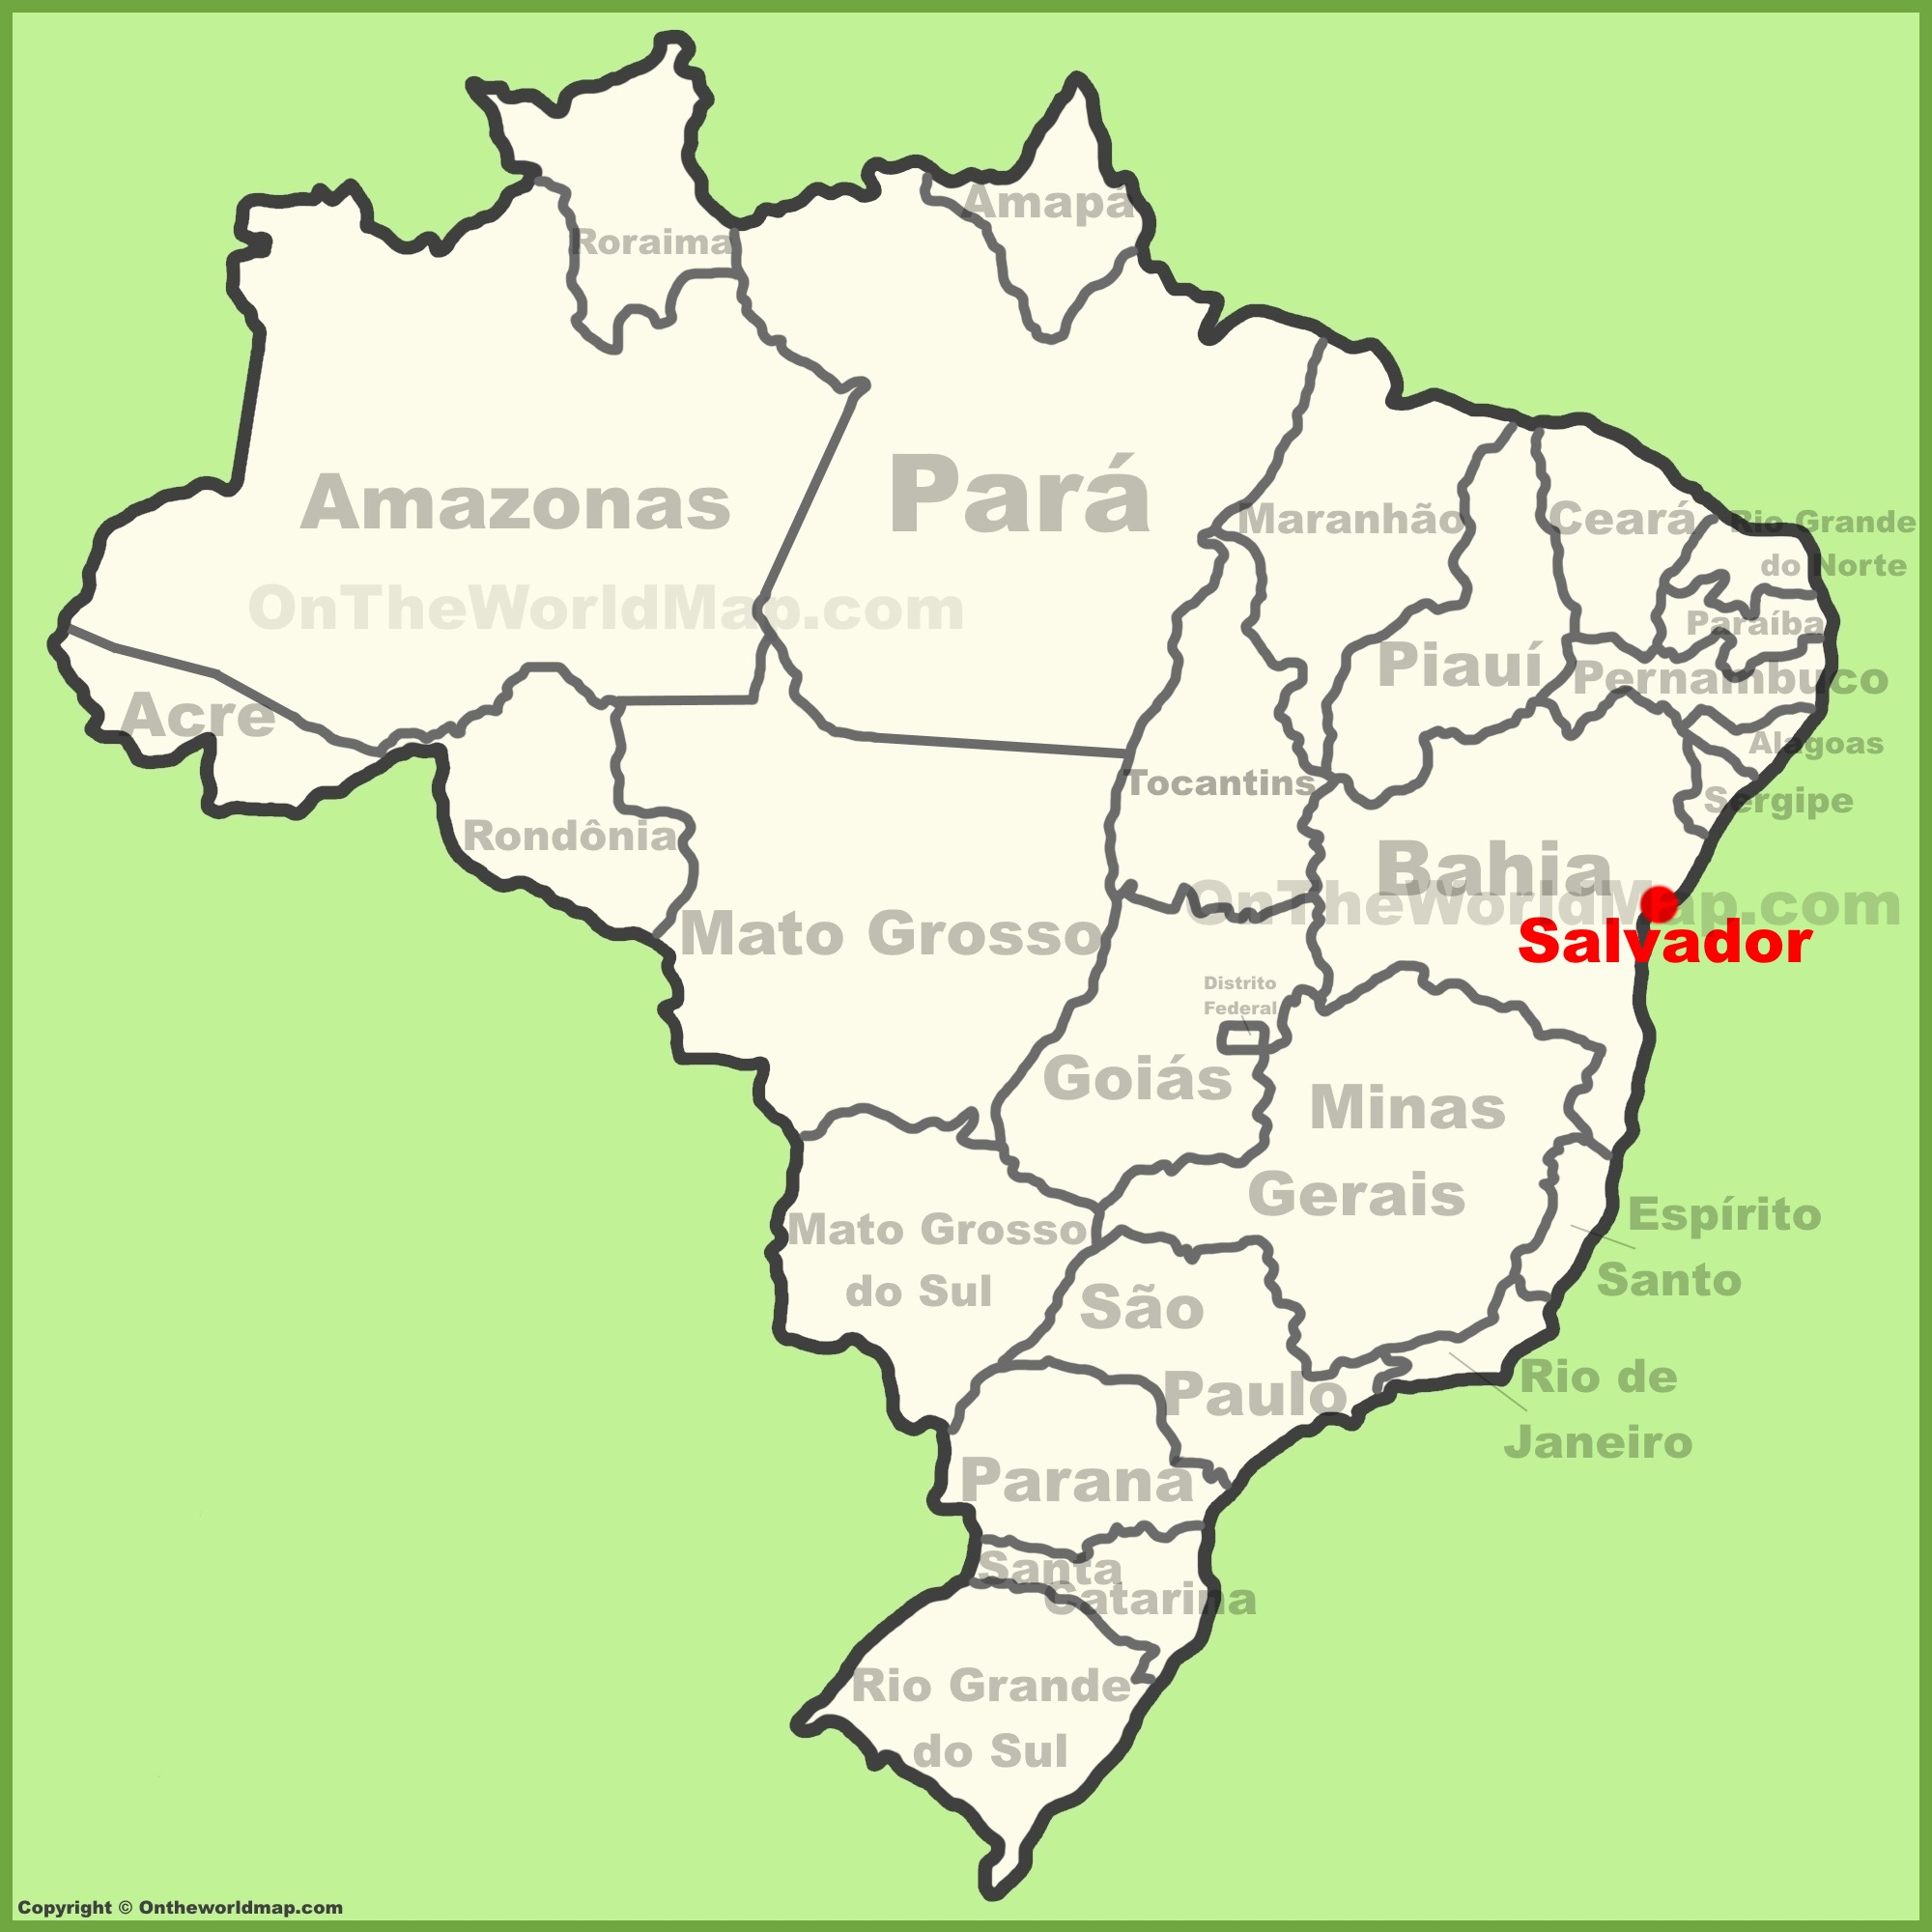 salvador bahia brazil map Salvador Location On The Brazil Map salvador bahia brazil map